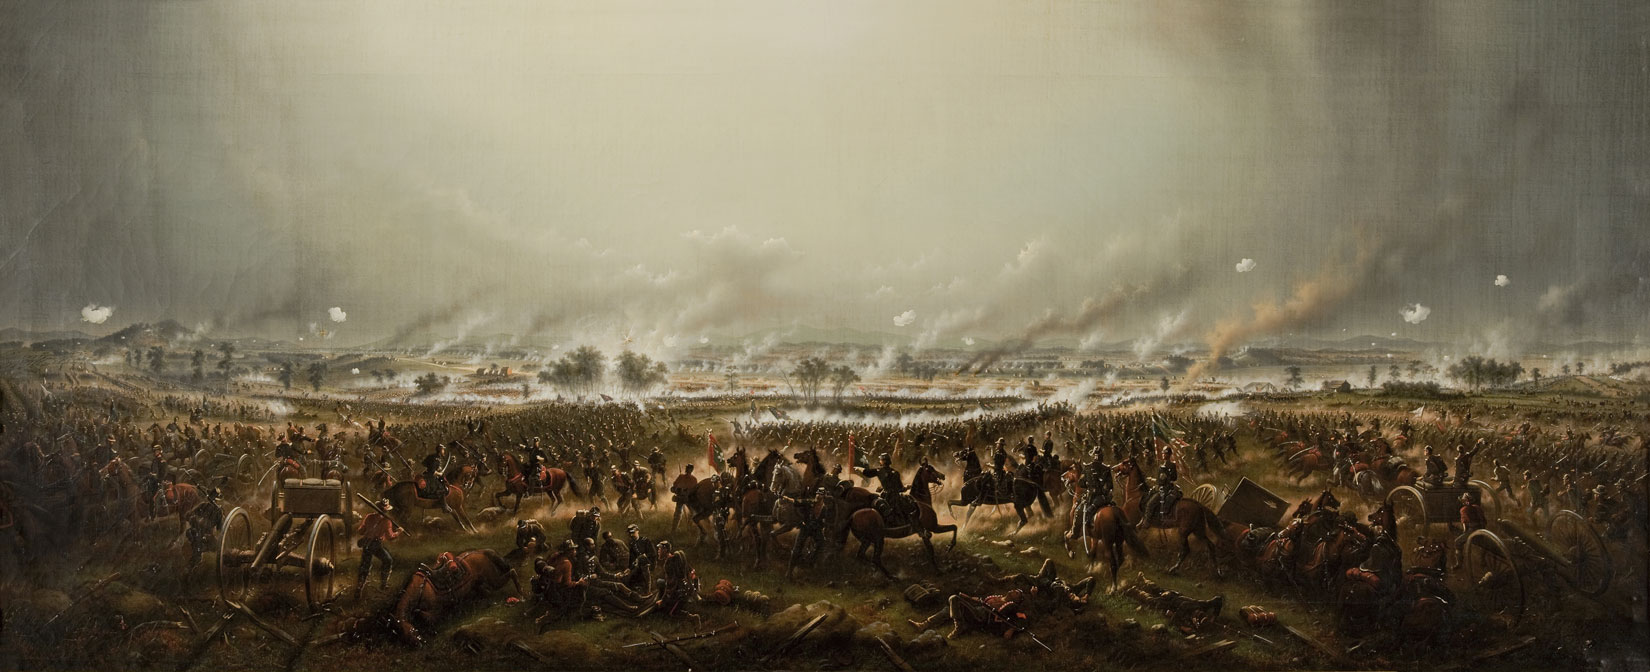 A large, rectangle, color painting of a battle has many details. The sky covers the top half of the painting, and has bright and dark grey parts, but generally is distinguished by the many columns of smoke rising from the battle. The battle covers a large, wide open landscape and the viewer can see far into the distance where the battle ranges. Various details visible include riderless horses, men dead on the ground, Civil War cannons being fired, groups of infantry soldiers fighting at close quarters, men on horseback charging, and battered flags flying.